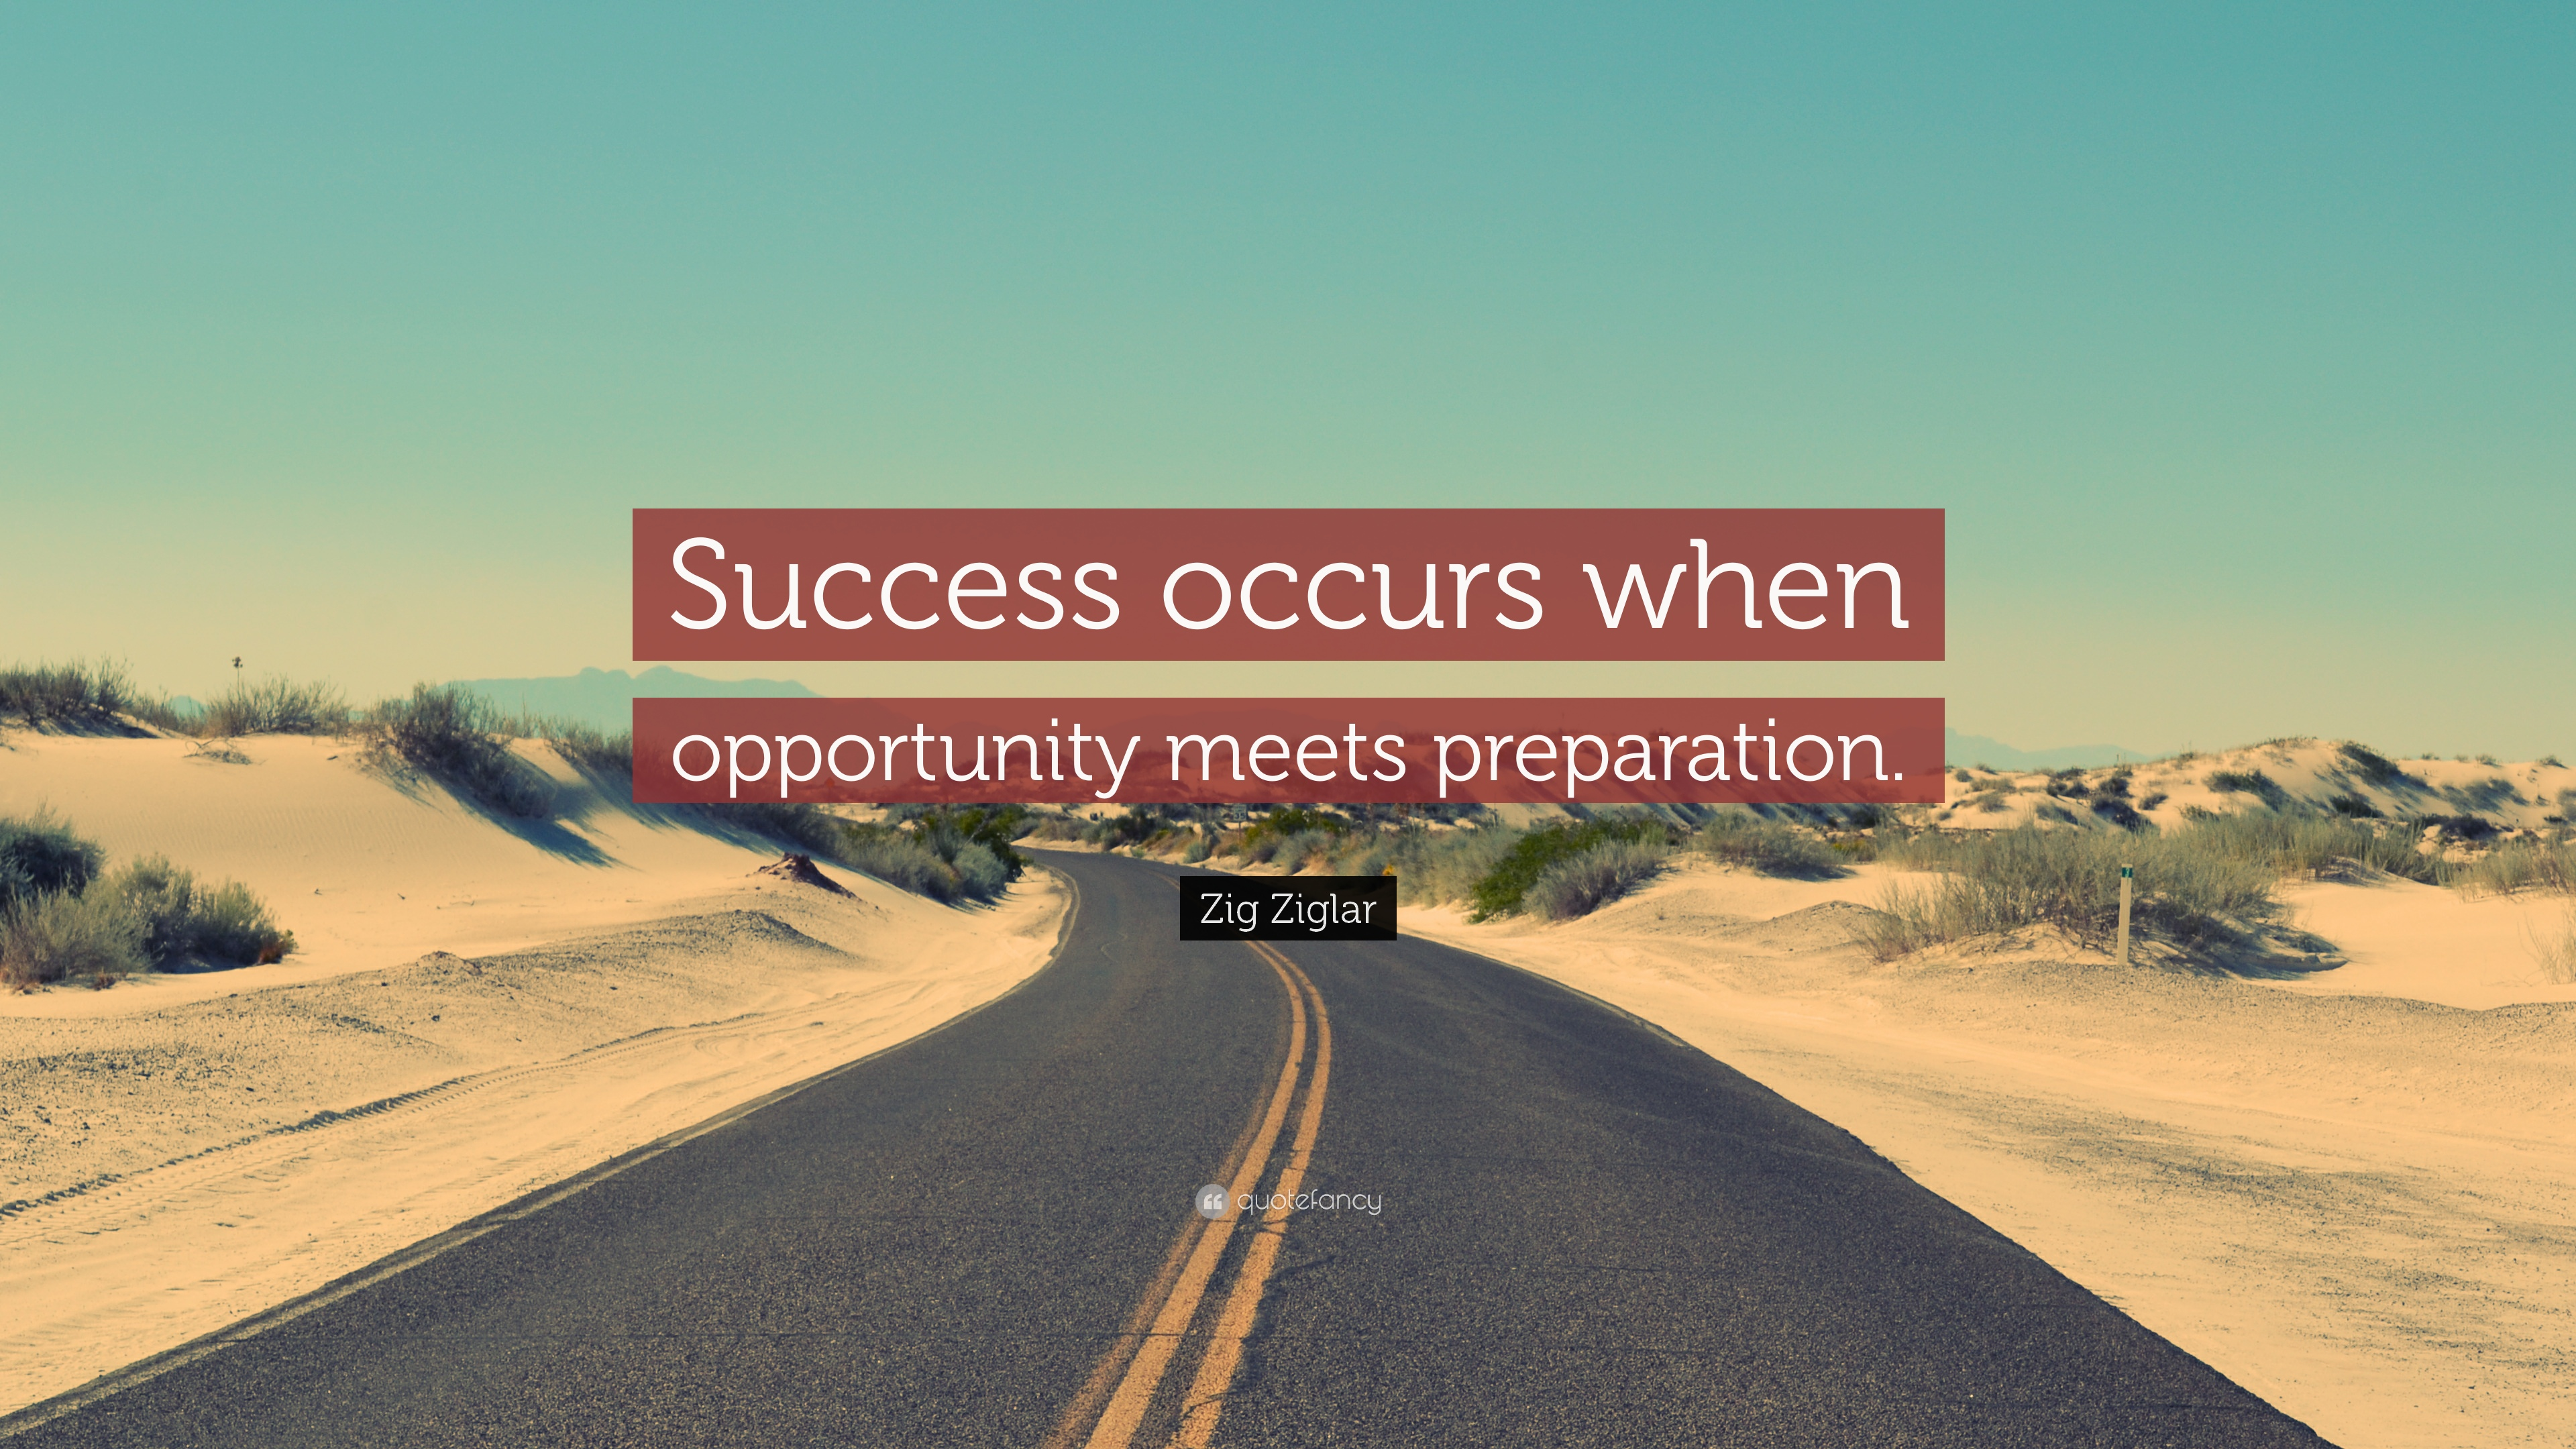 success occurs when opportunity meets preparation